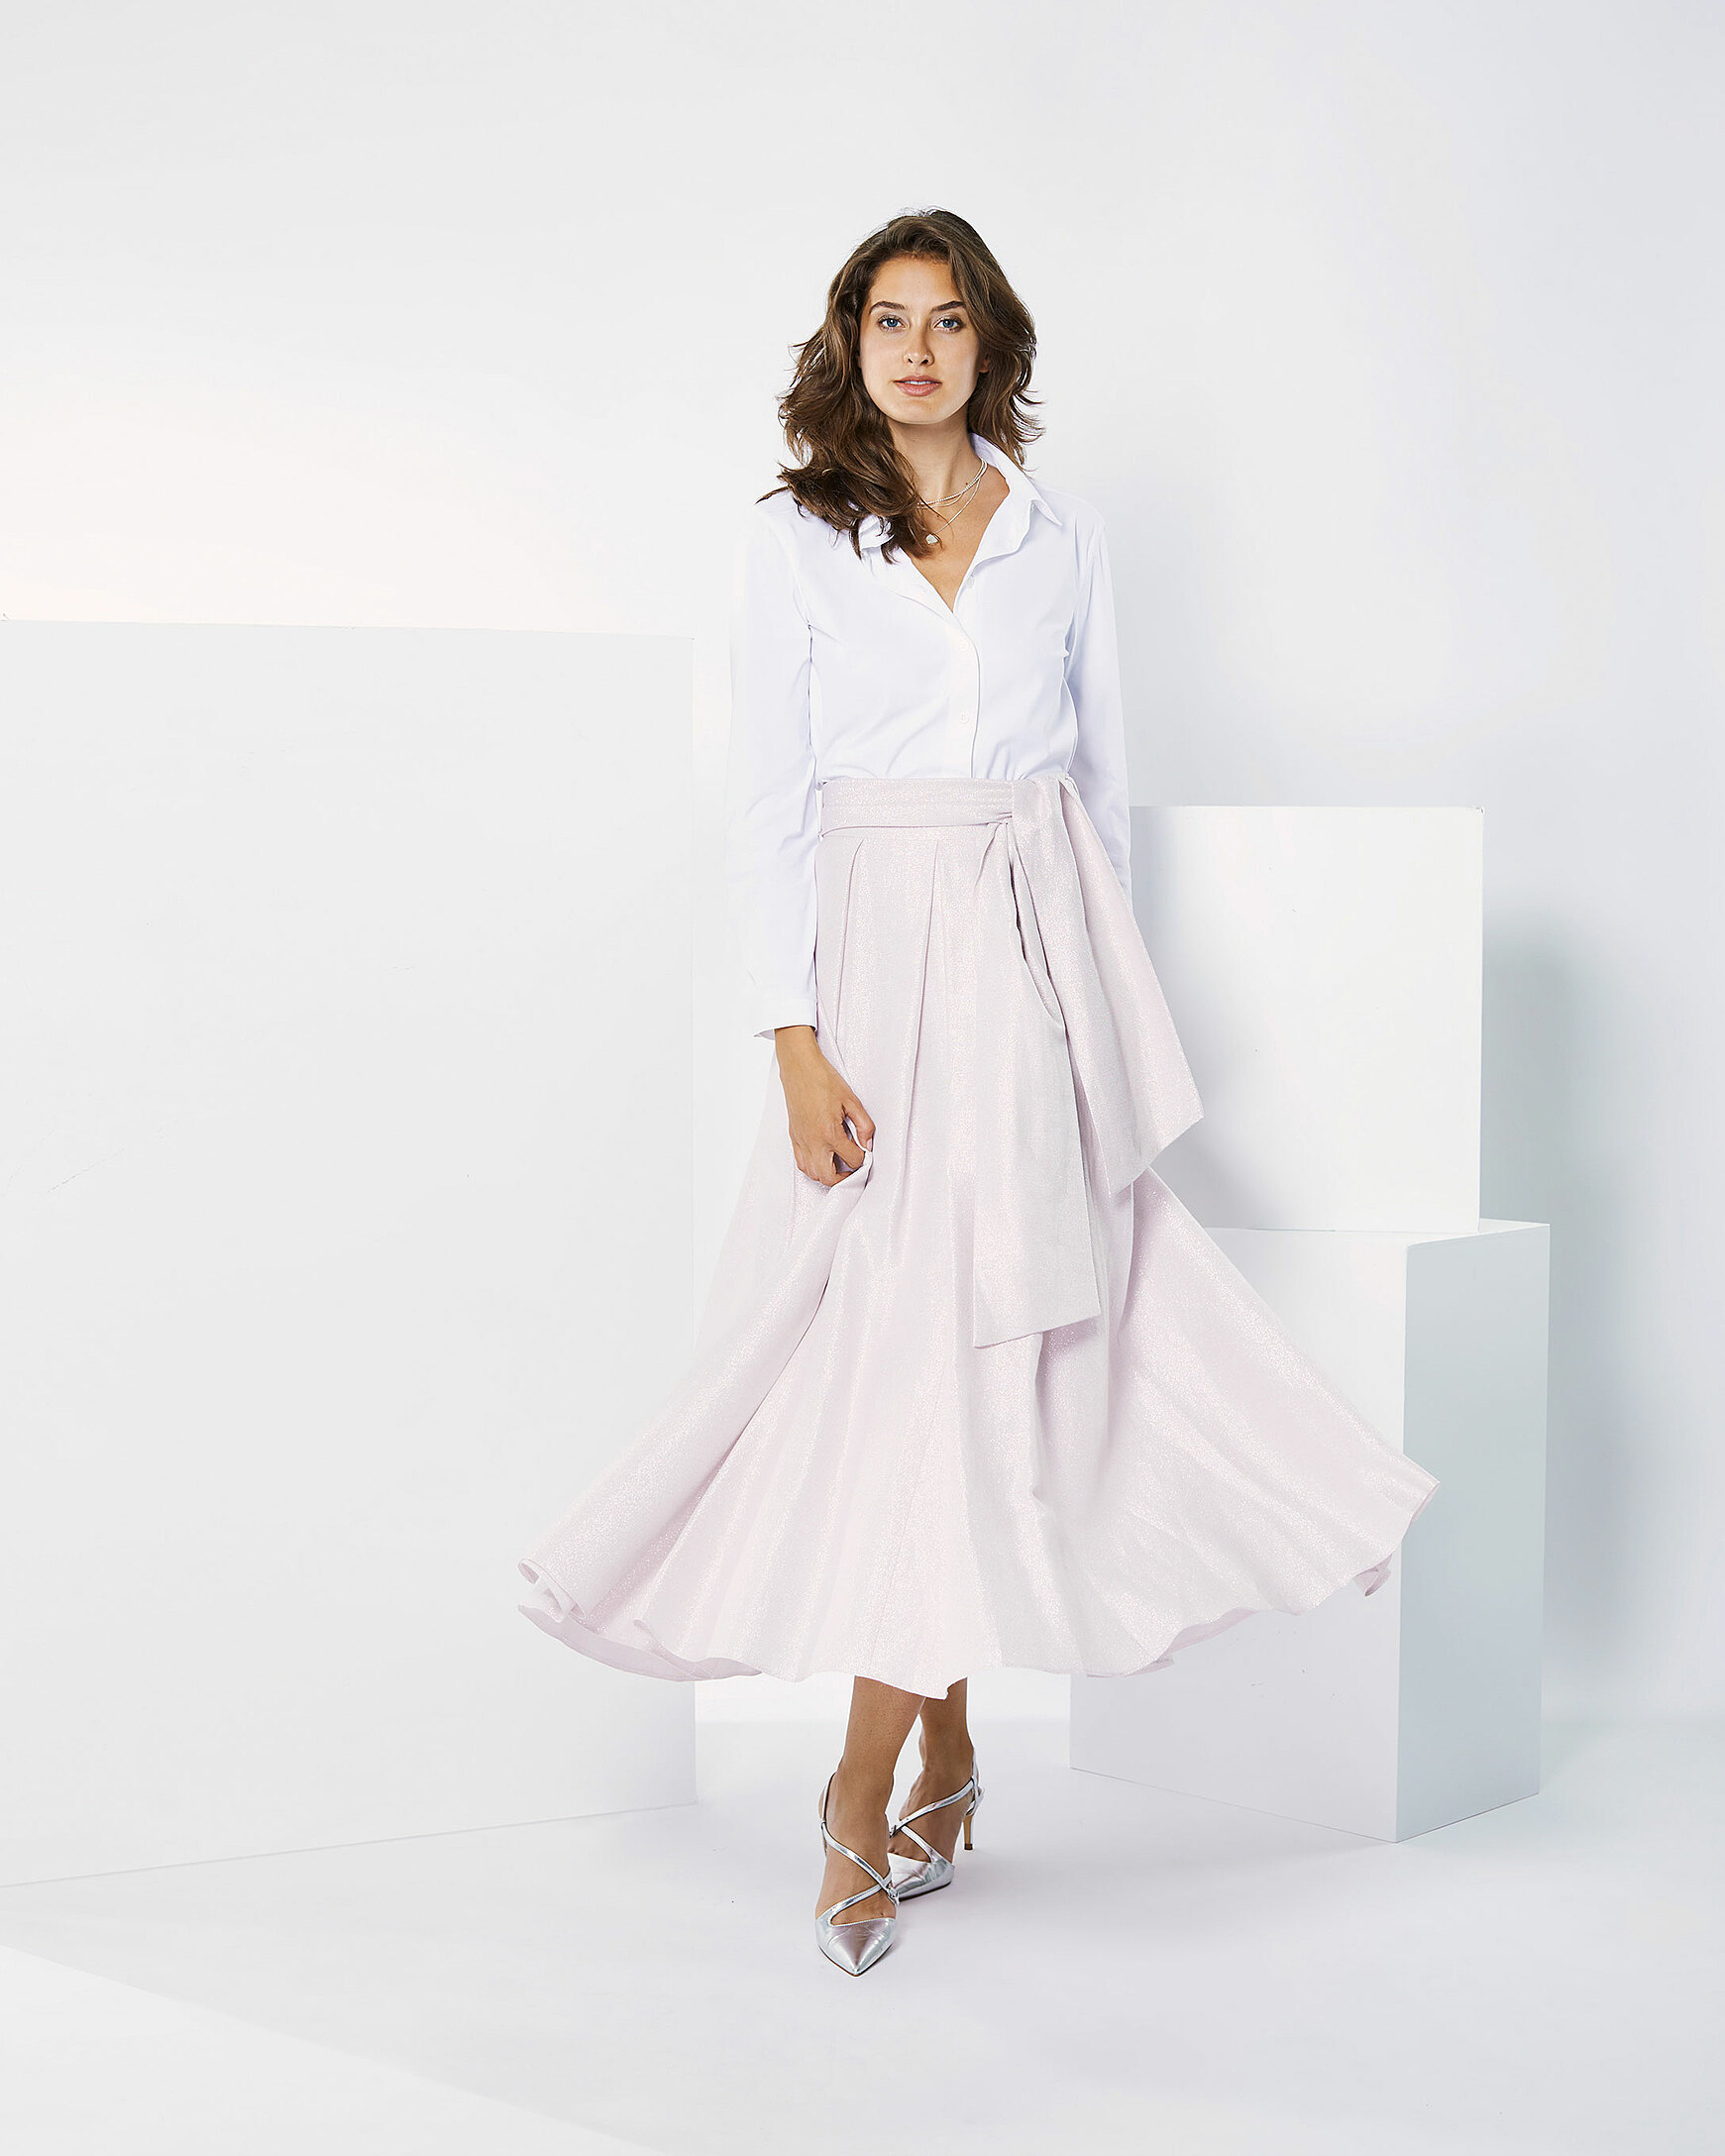 A brown hair model in rosy skirt and a white blouse is moving in a white setting